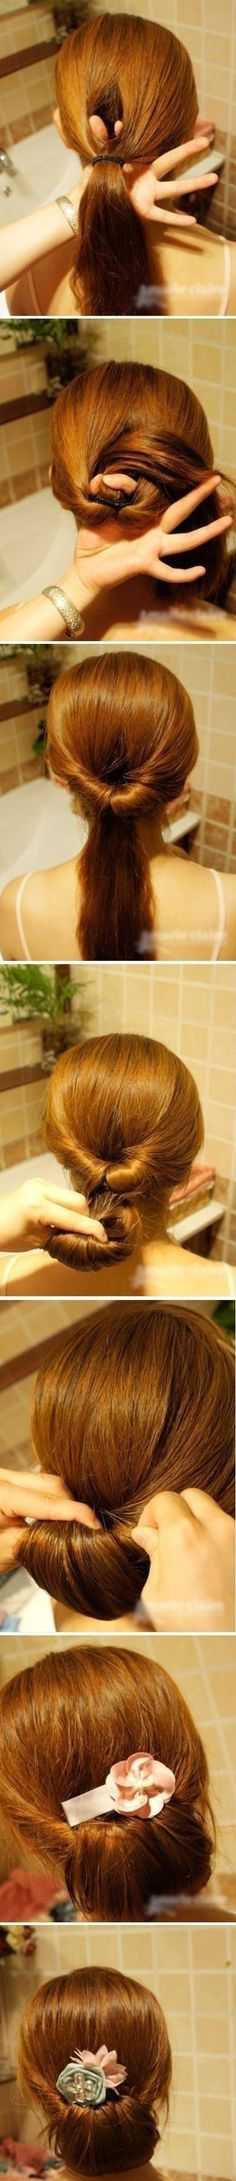 Expert Hair Care Tips For Any Age. Your hair might be your worst enemy, but it does not have to be! You can reclaim your hair with a little research and effort. First, identify your hair typ Five Minute Hairstyles, Quick Hairstyles, Easy Ponytail Hairstyles, Creative Hairstyles, Latest Hairstyles, Hairstyles 2018, Simple Hairstyles For Long Hair, Ballet Hairstyles, Easy Formal Hairstyles